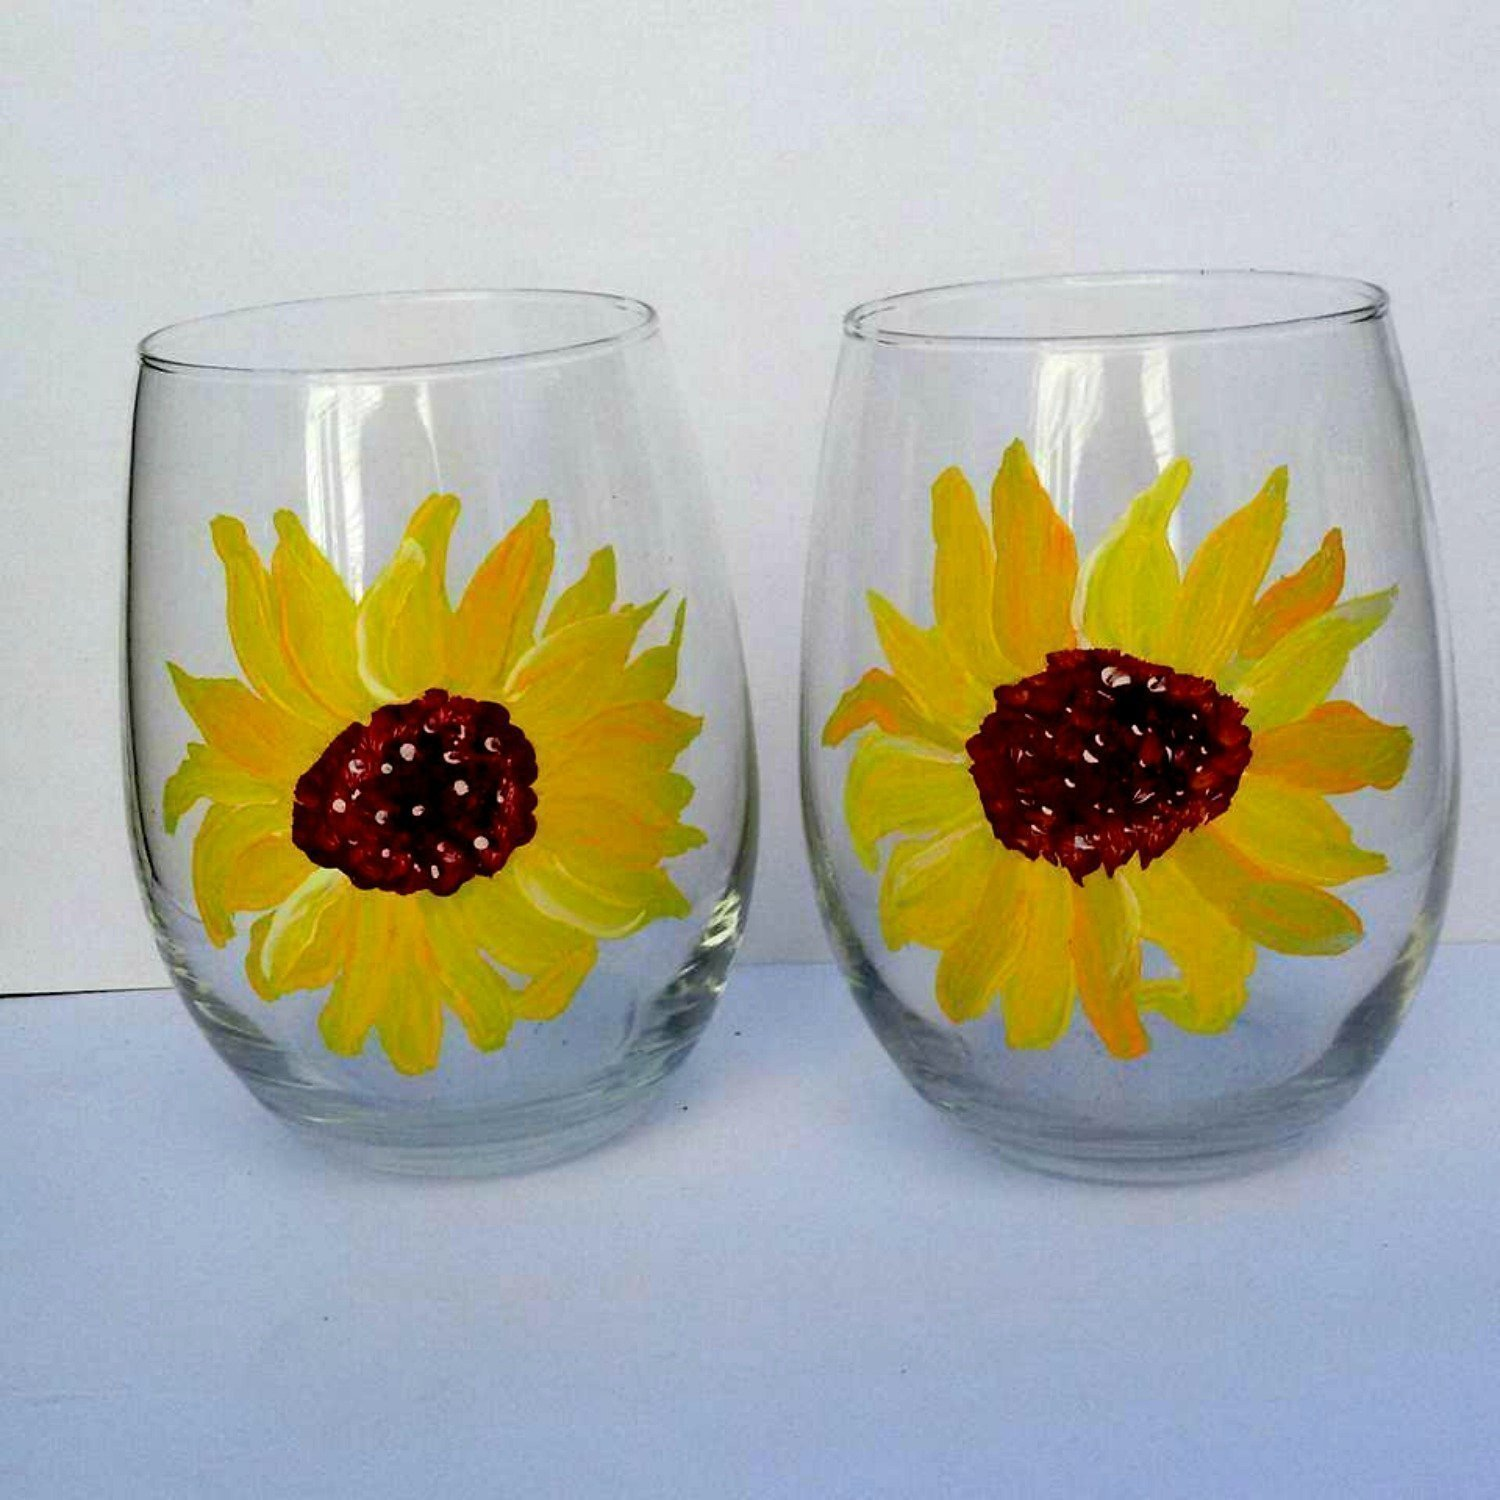 Yellow Sunflower Hand Painted Stemless Wine Glasses (Set Of 2), Floral Kitchen Decor by Atkinson Creations (Image #3)